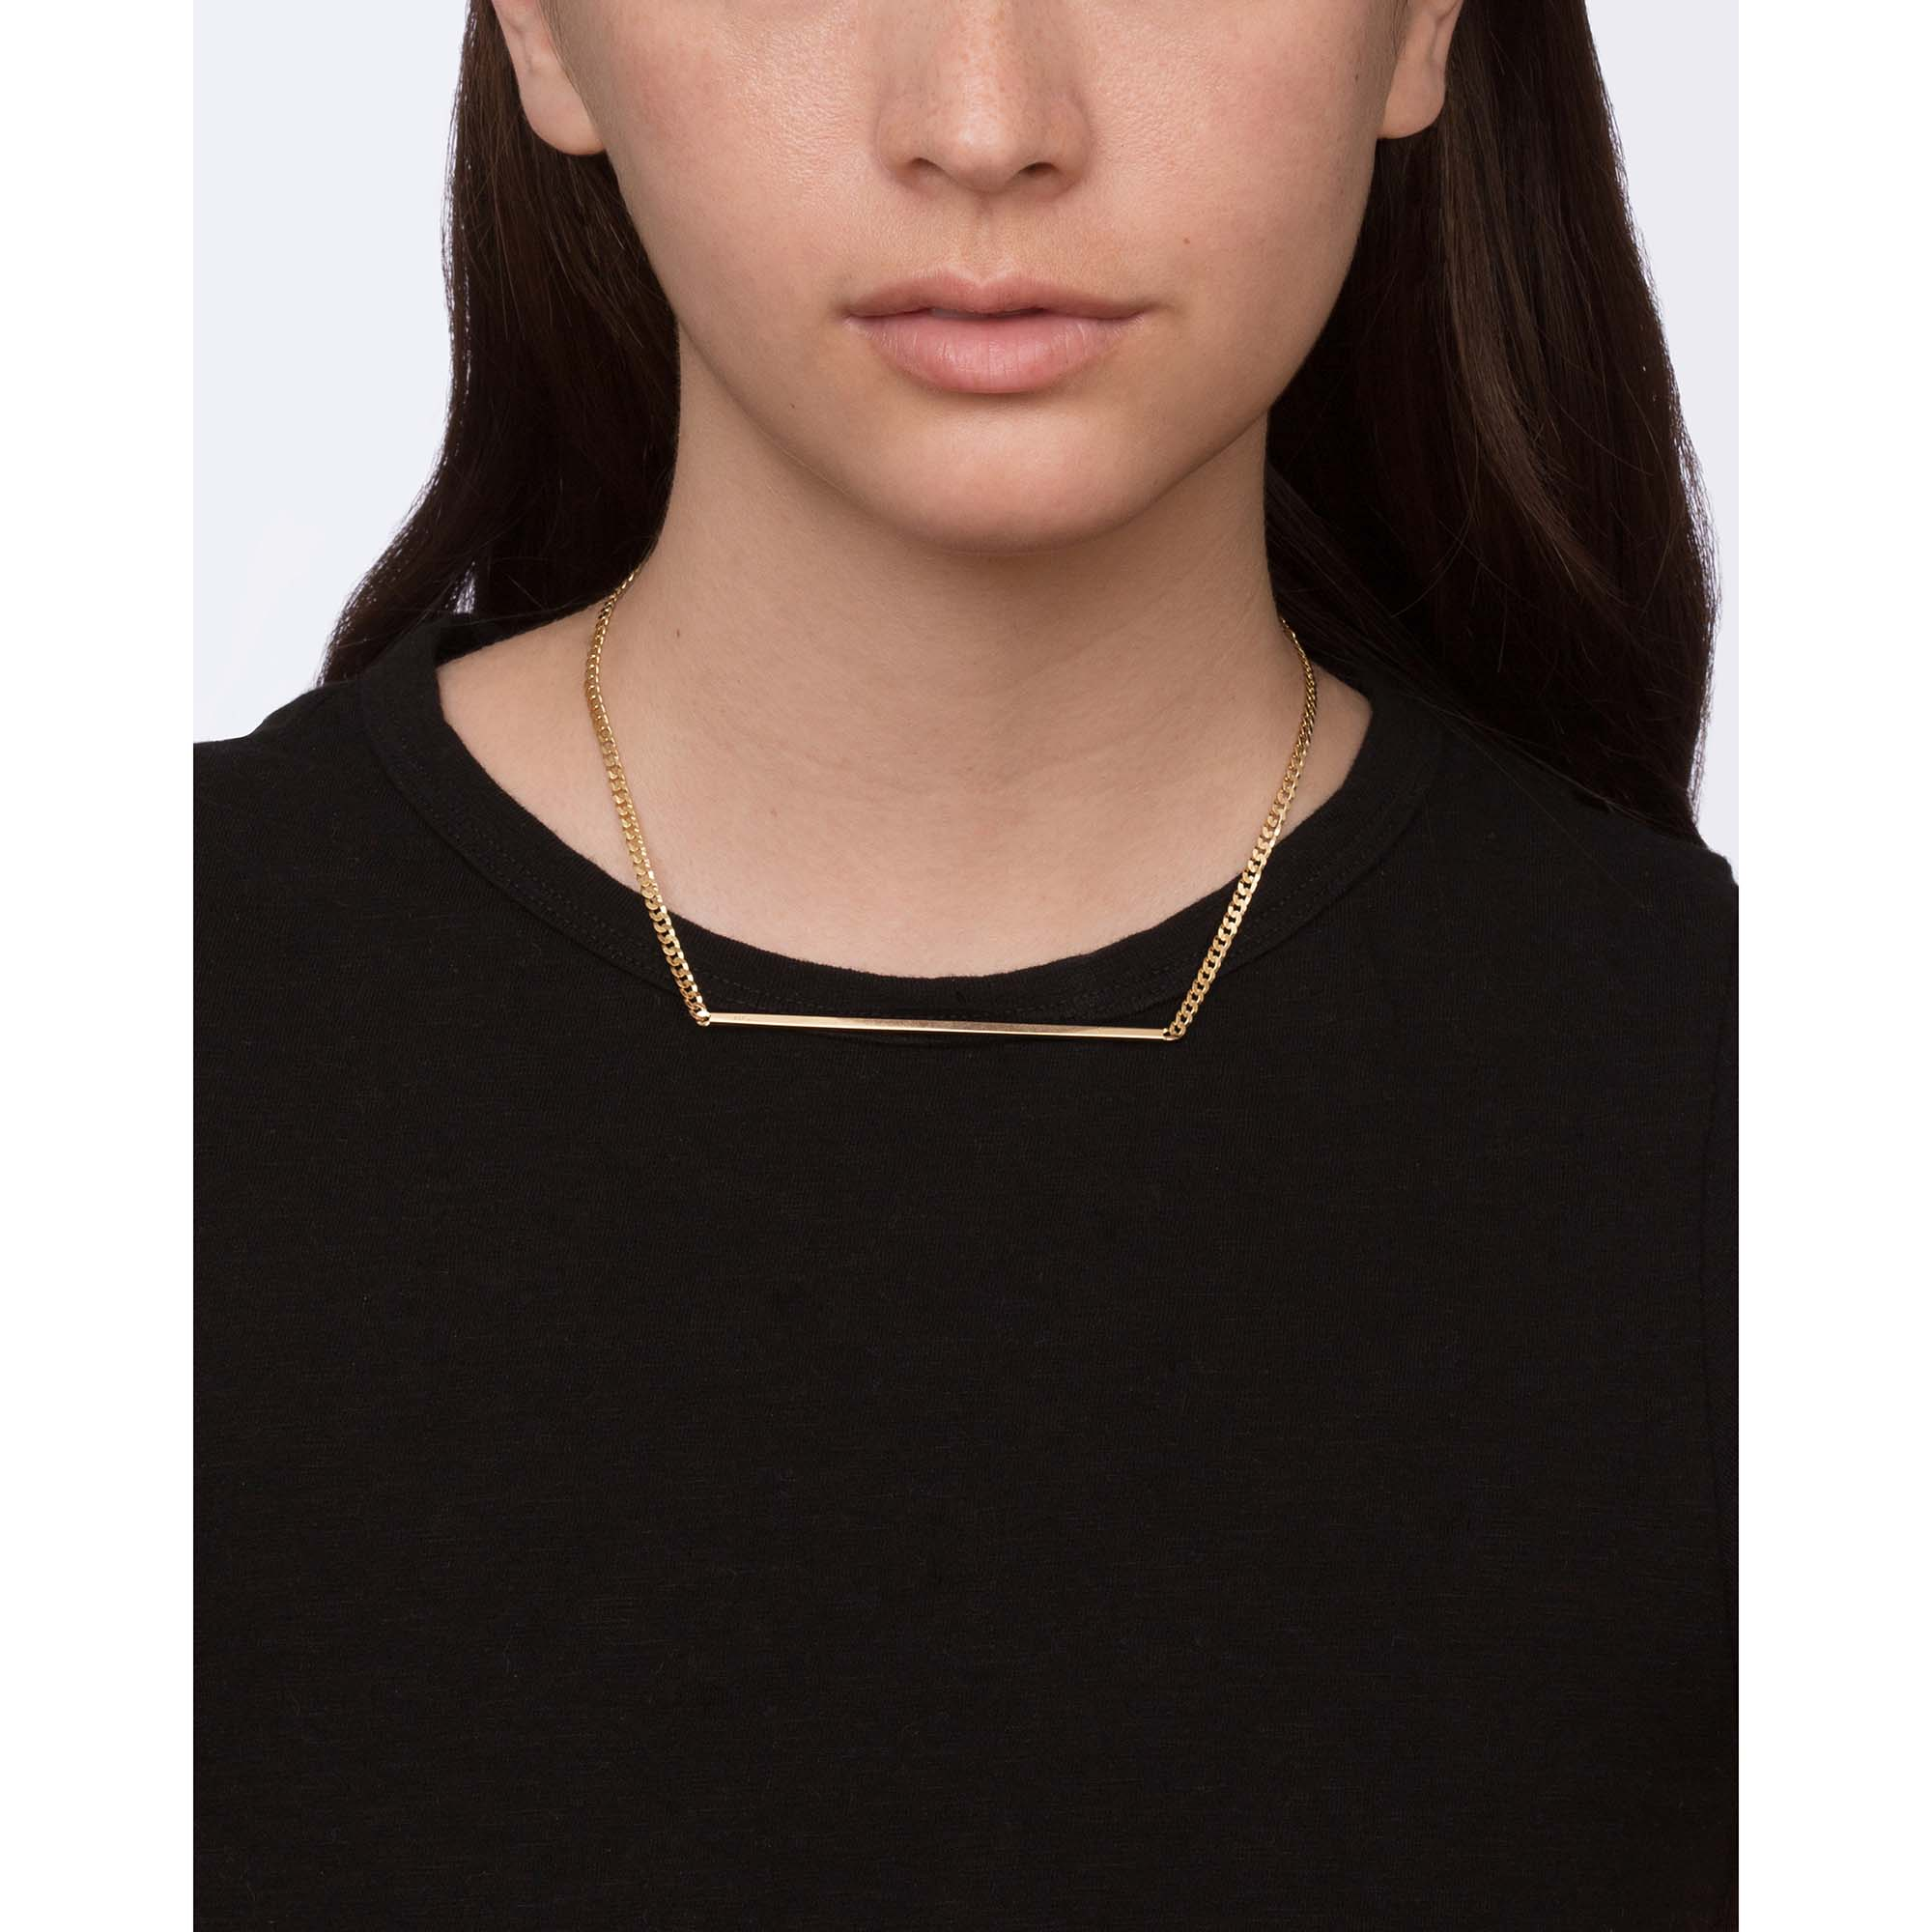 Gold Muzzle Choker by Established for Broken English Jewelry